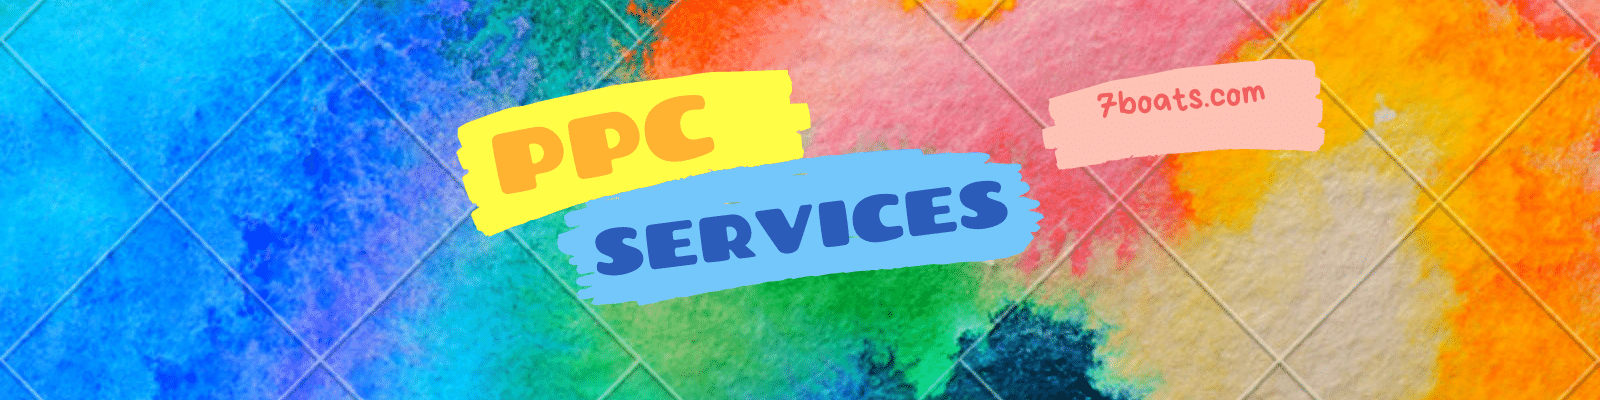 PPC Services by 7boats